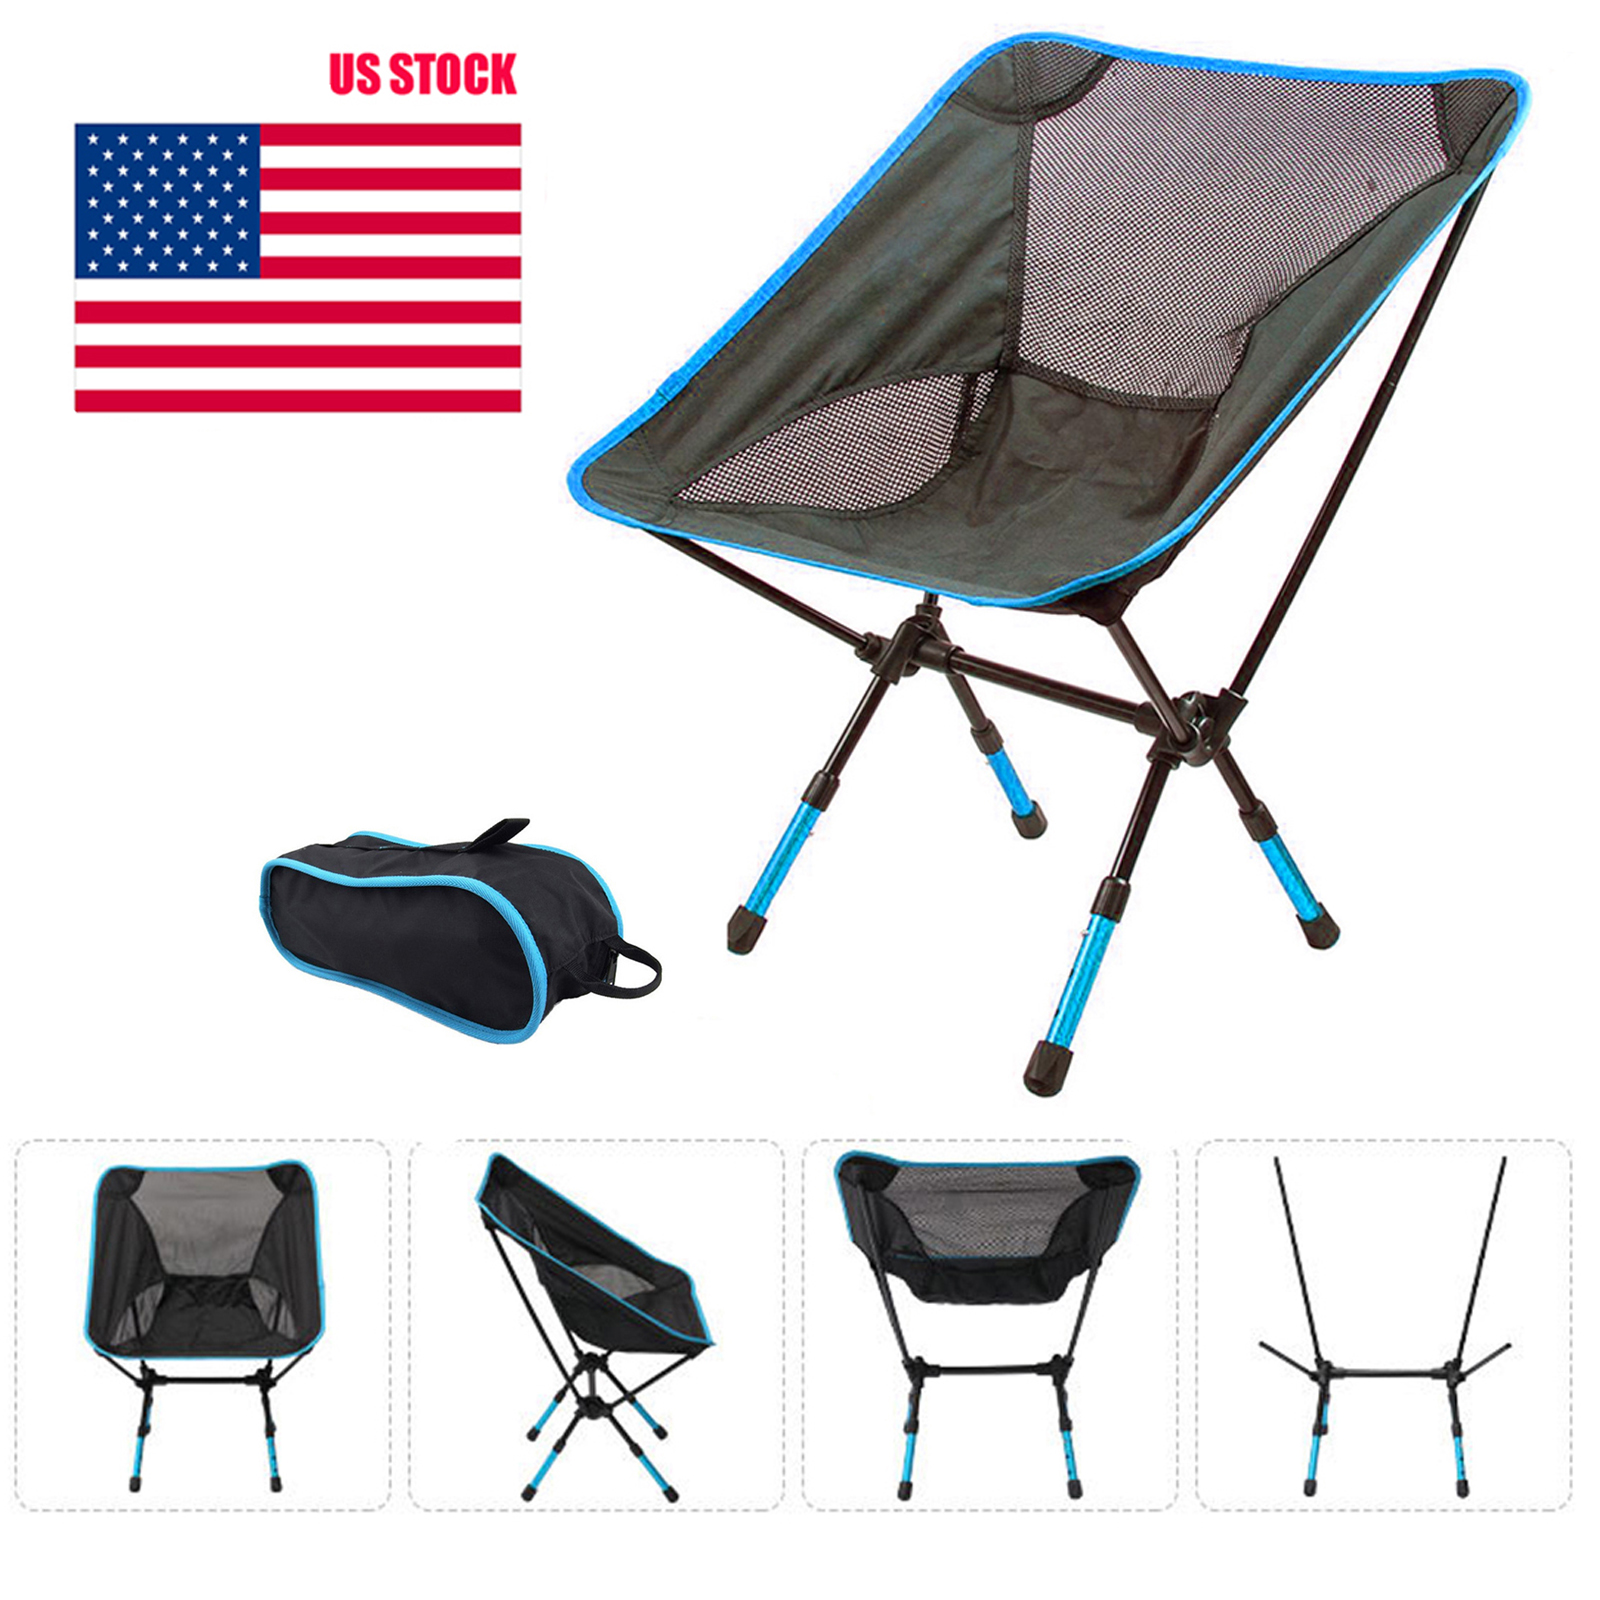 Adjustable Folding Chair Outdoor Camping Lightweight Portable Chair with Carry Bag for Picnic BBQ Beach Fishing Warehouse 2018 portable folding camping chair fishing chair 600d oxford cloth lightweight seat for outdoor picnic bbq beach with bag